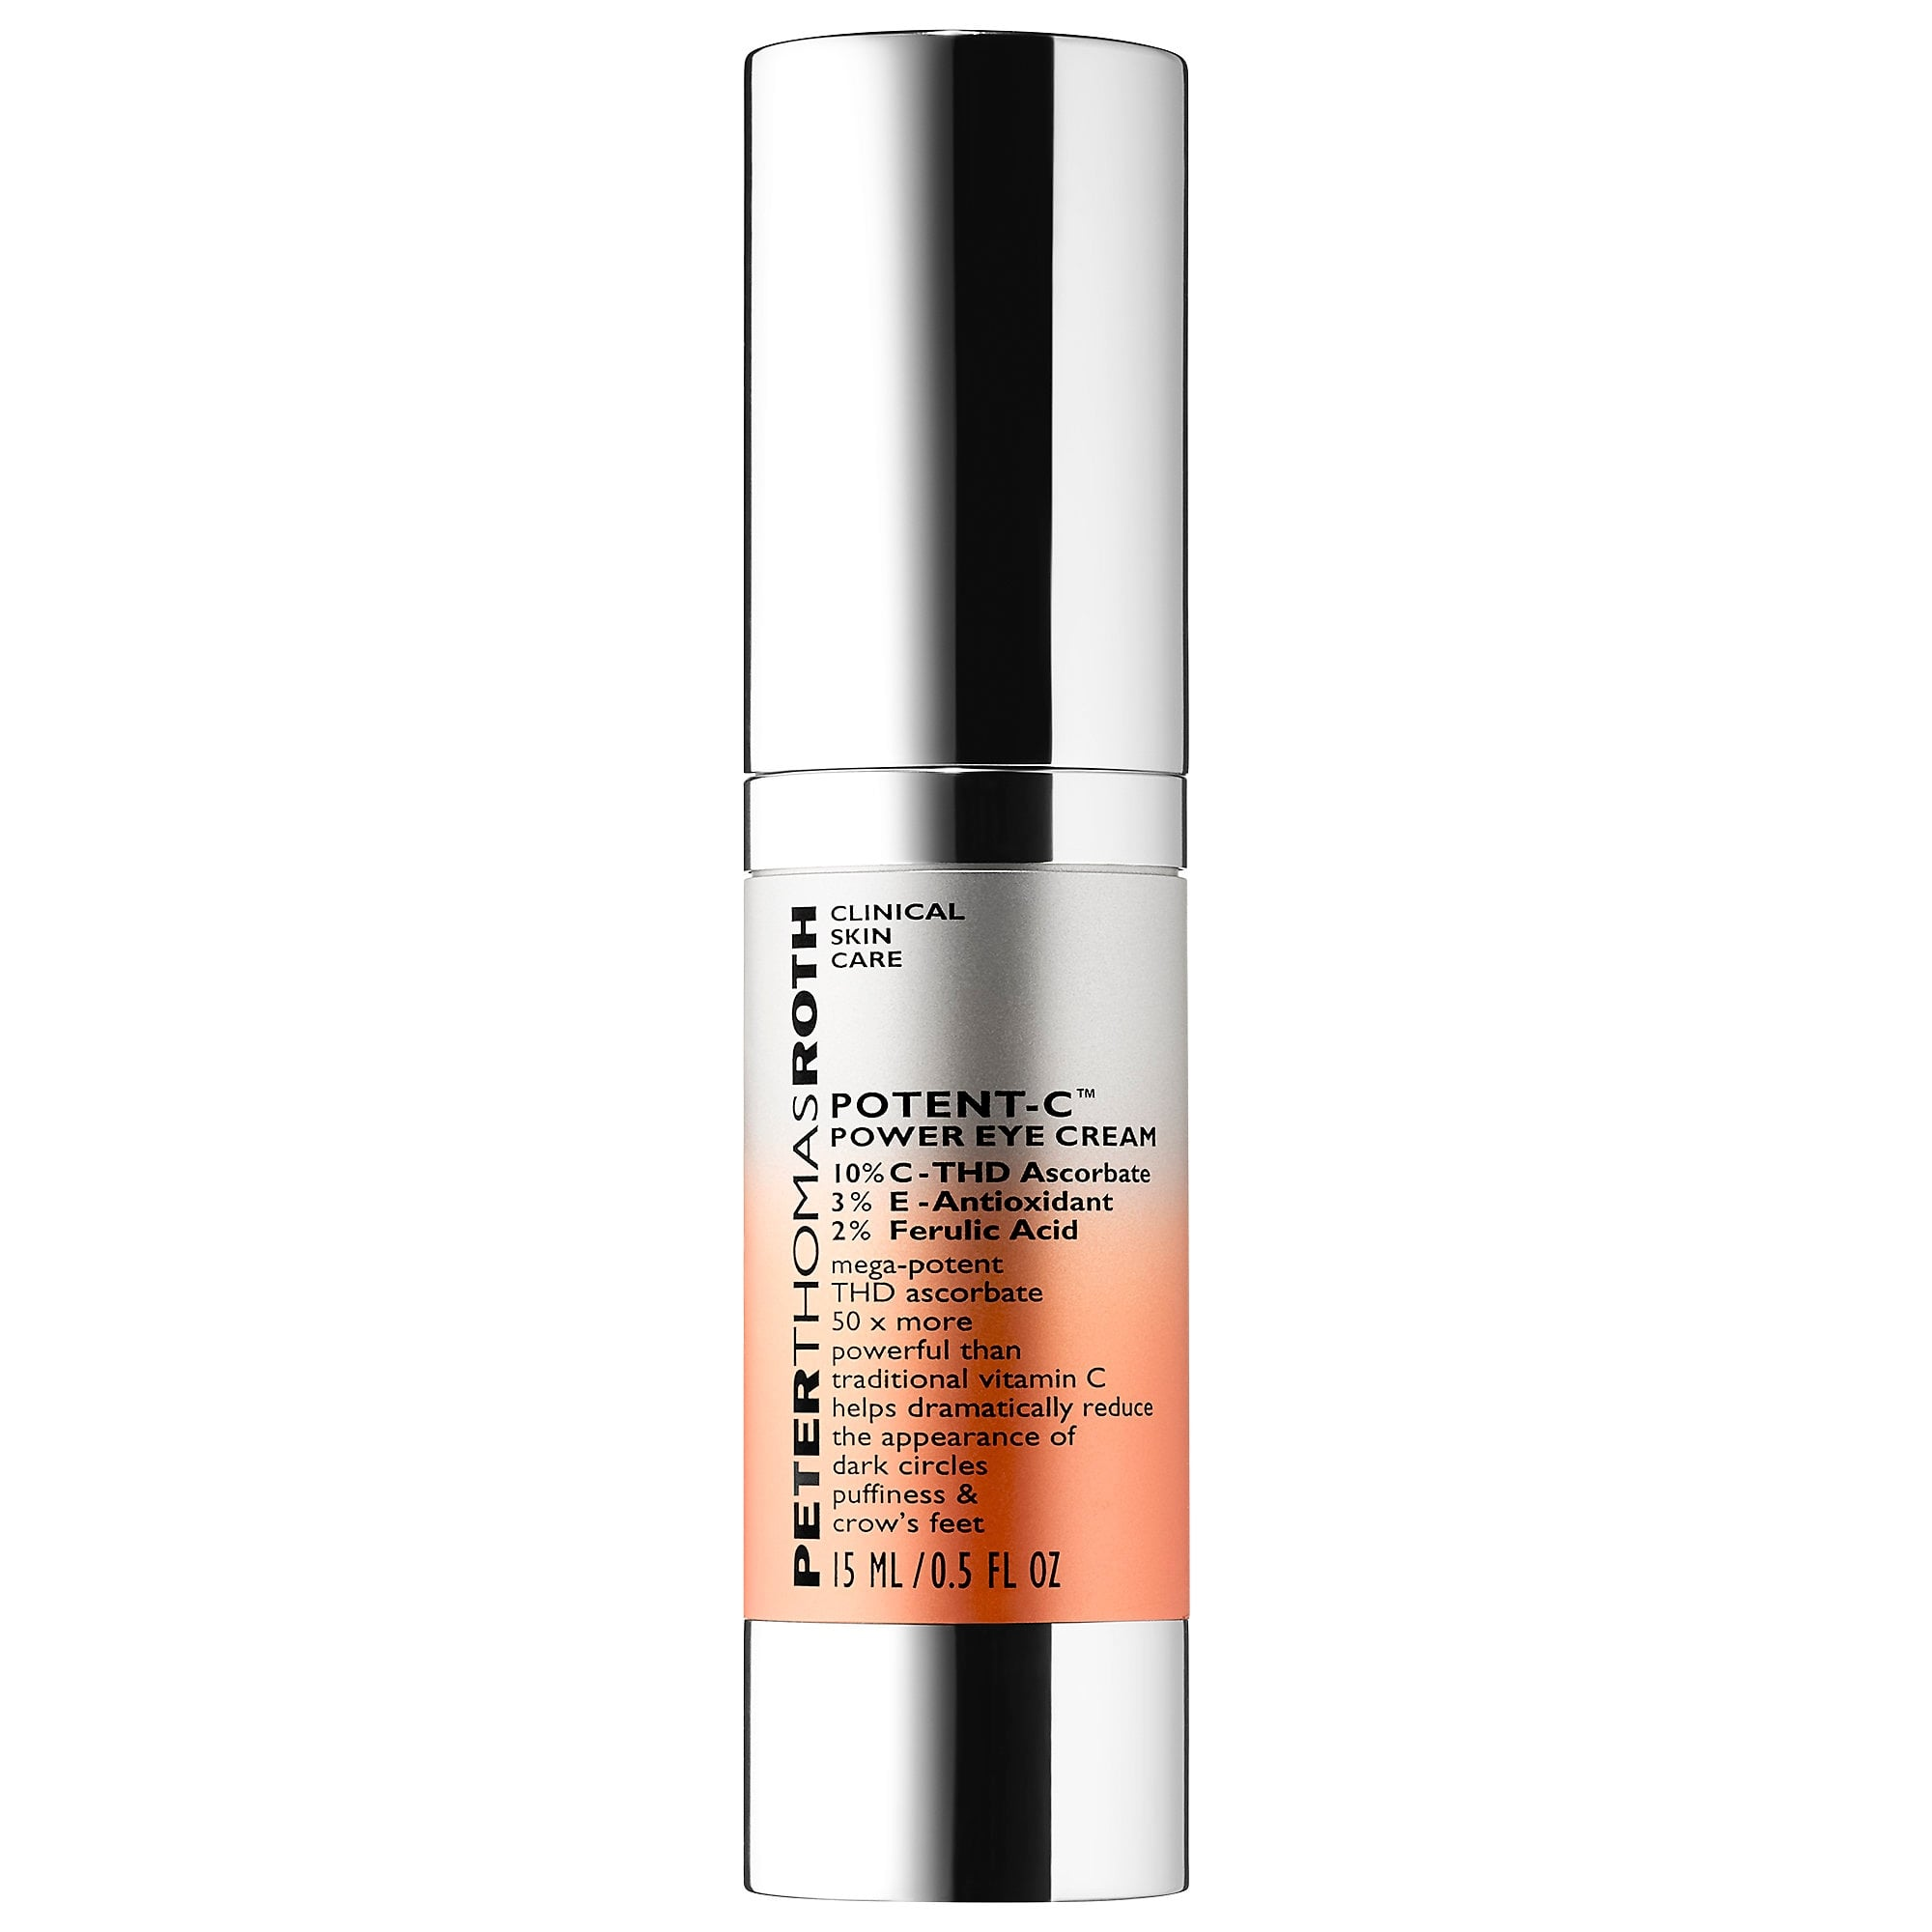 Peter Thomas Roth Potent C Vitamin C Power Eye Cream Here Are Sephora S Very Best Vitamin C Eye Creams To Tackle Dark Circles And Puffiness Popsugar Beauty Photo 8